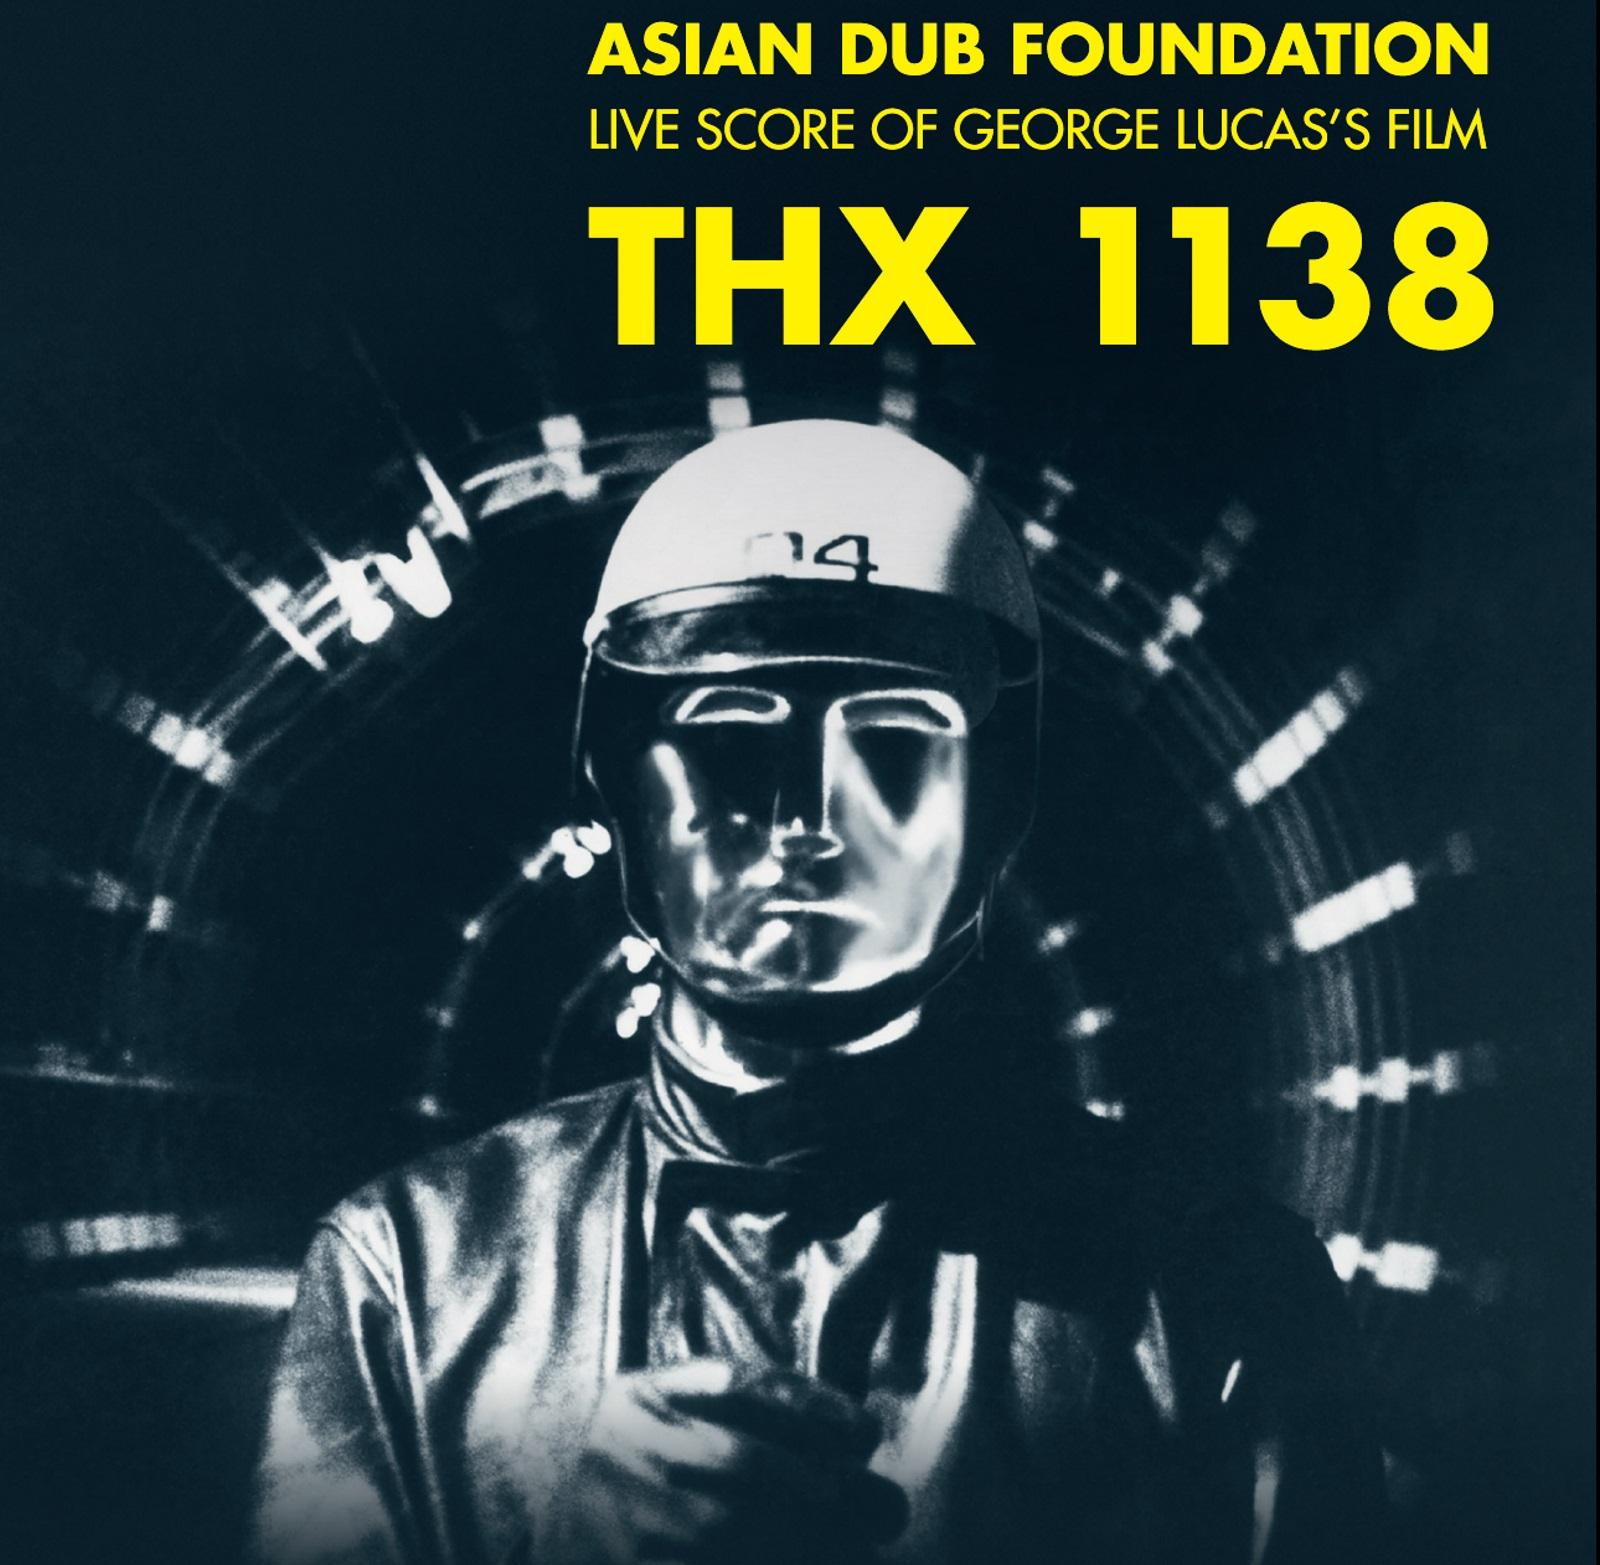 thx-1138-a-must-see-sci-fi-movie-of-the-past-thx-film-poster